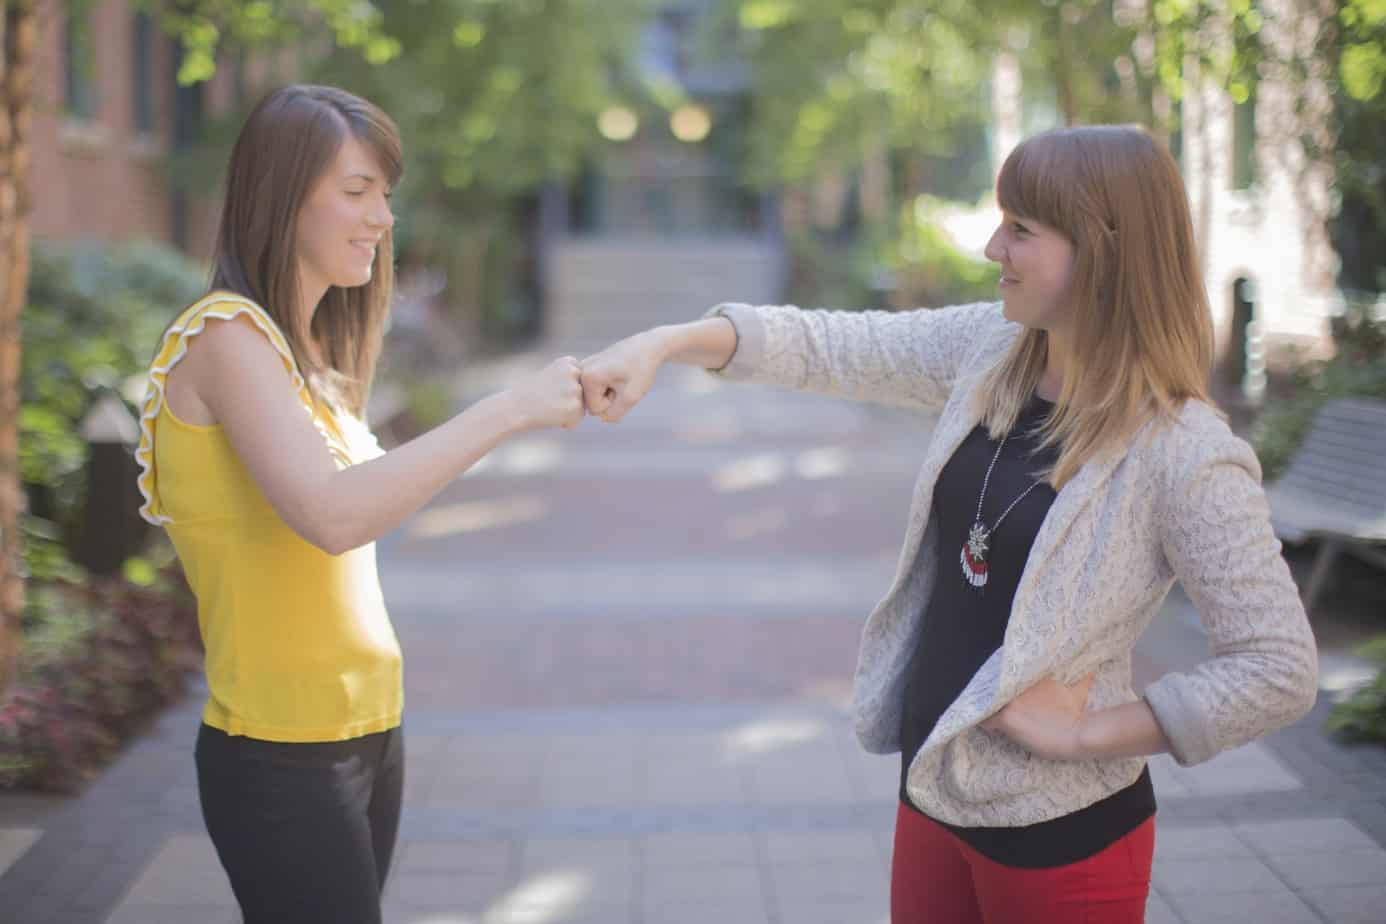 Girls Fist bump